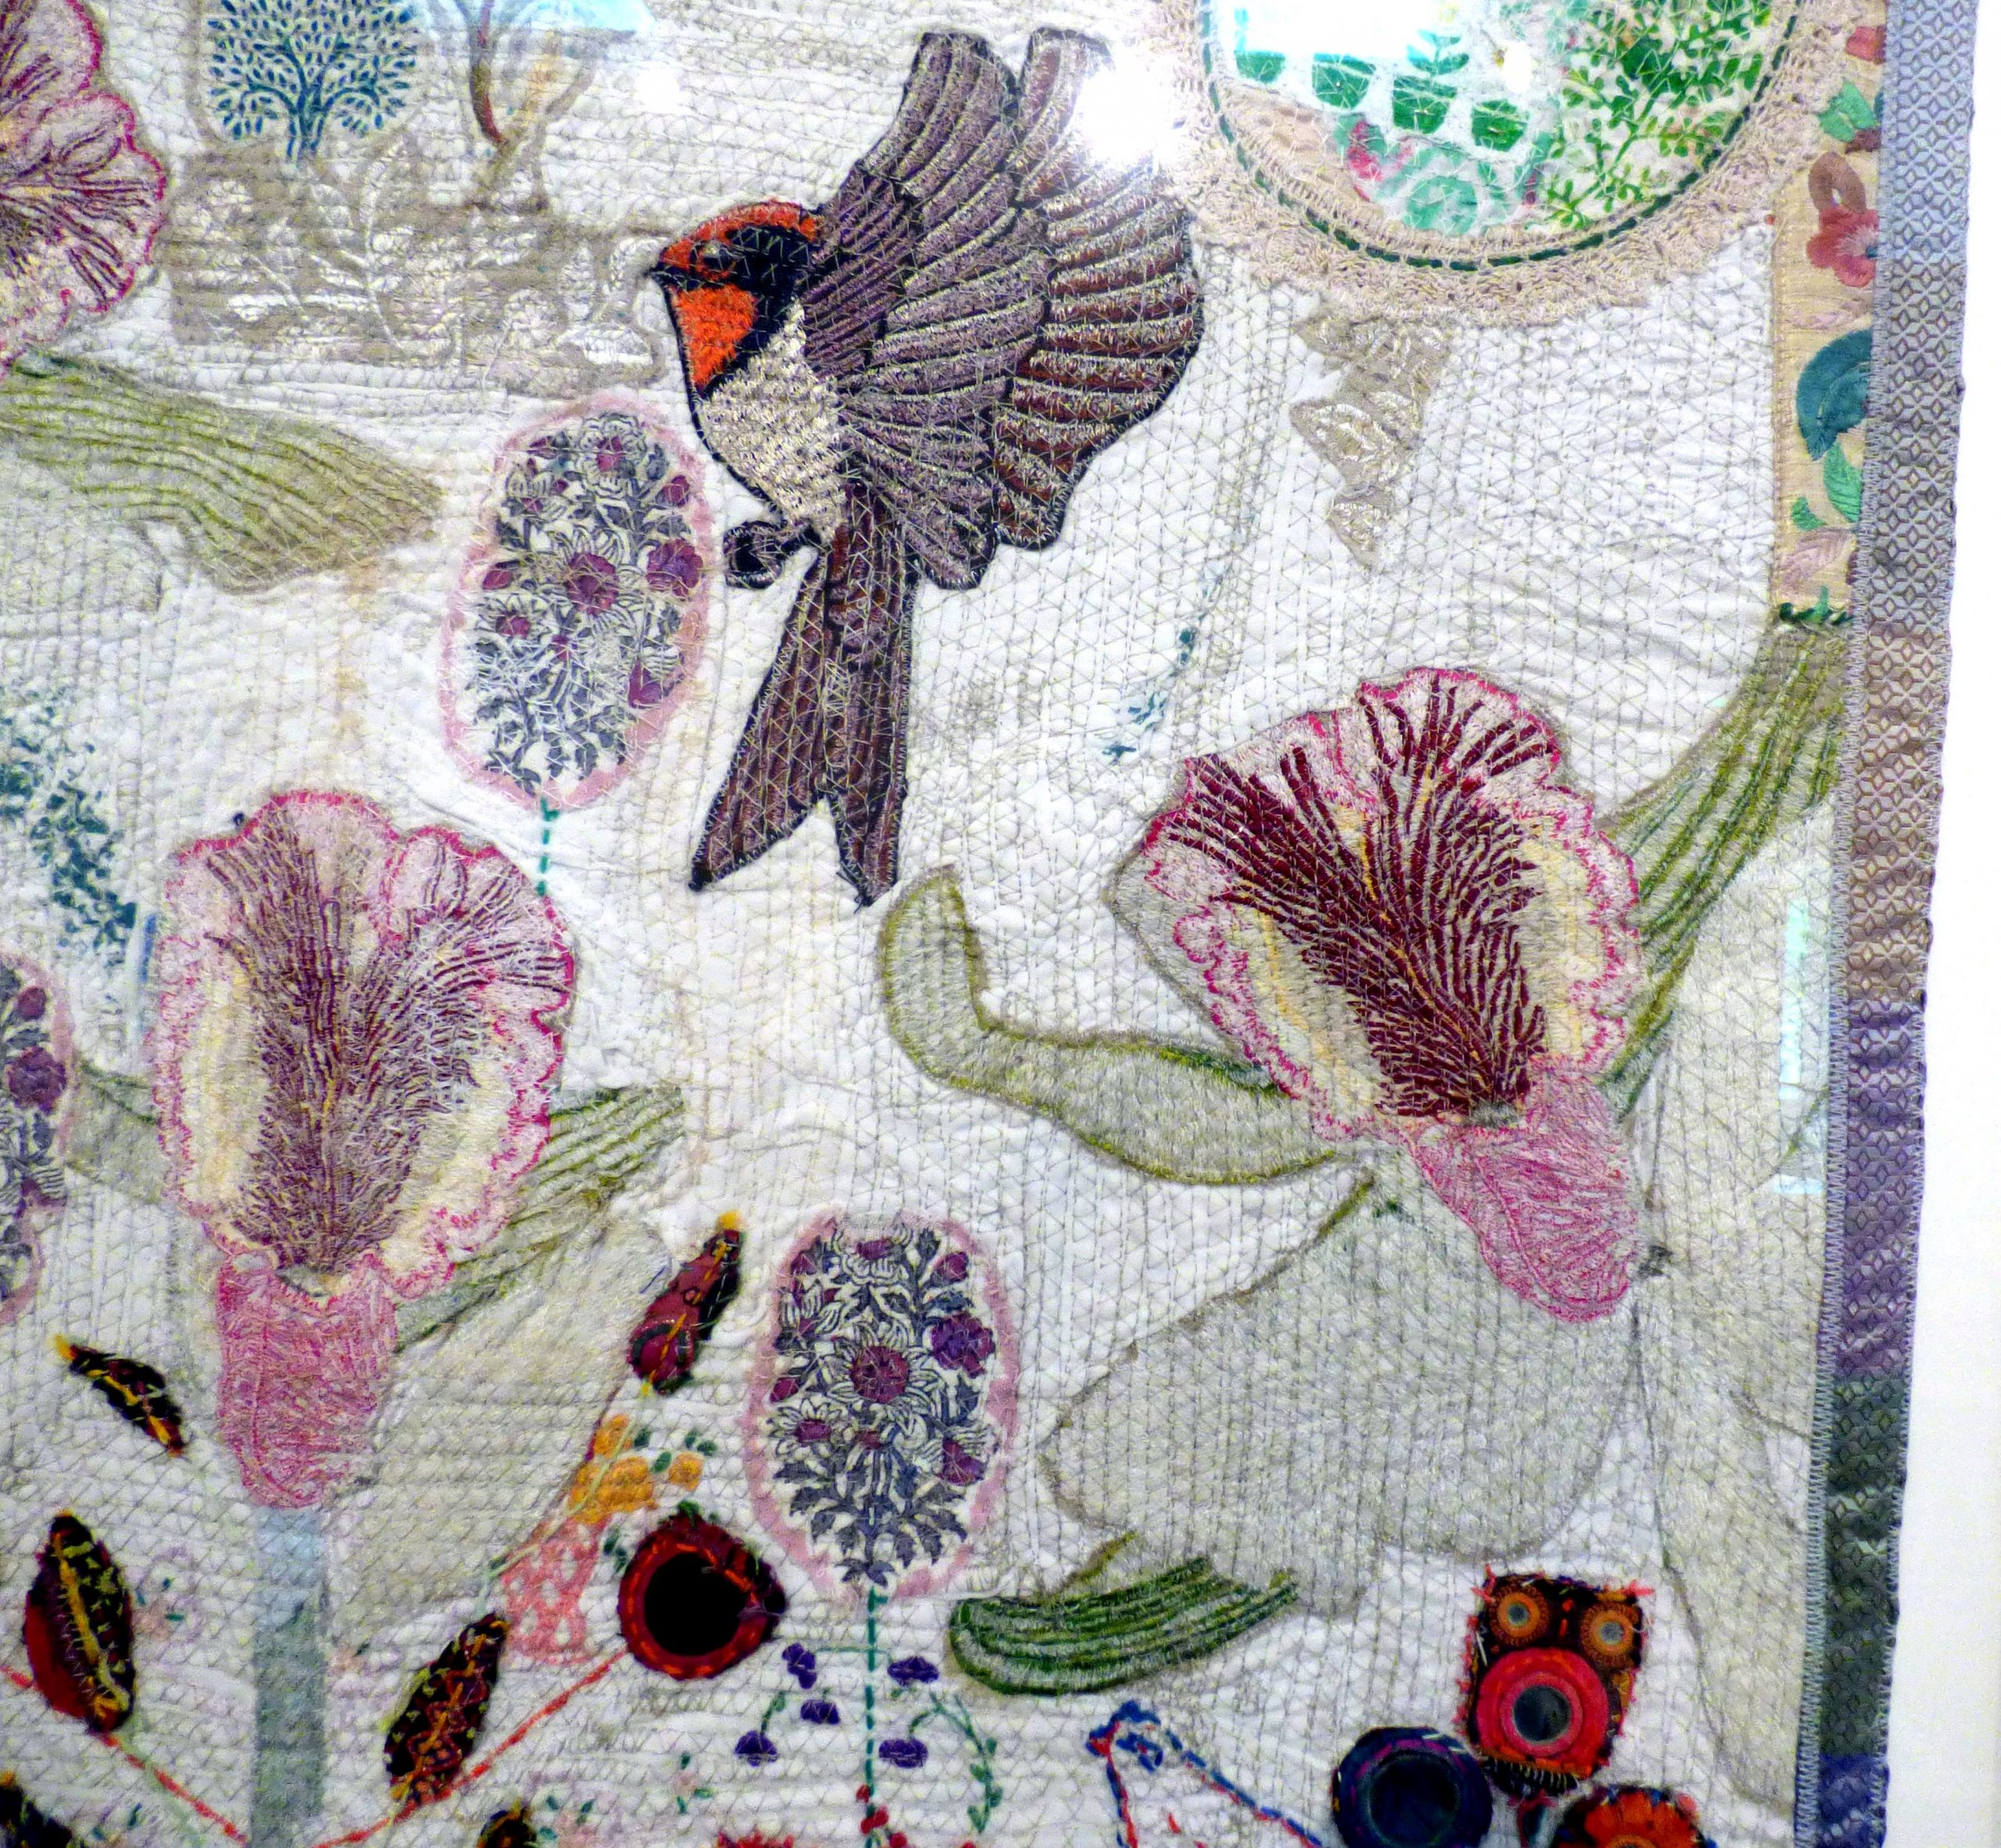 (detail) MAHARINI Gardens, mixed media textiles by Anne Kelly, Ruthin Craft Gallery, July 2021